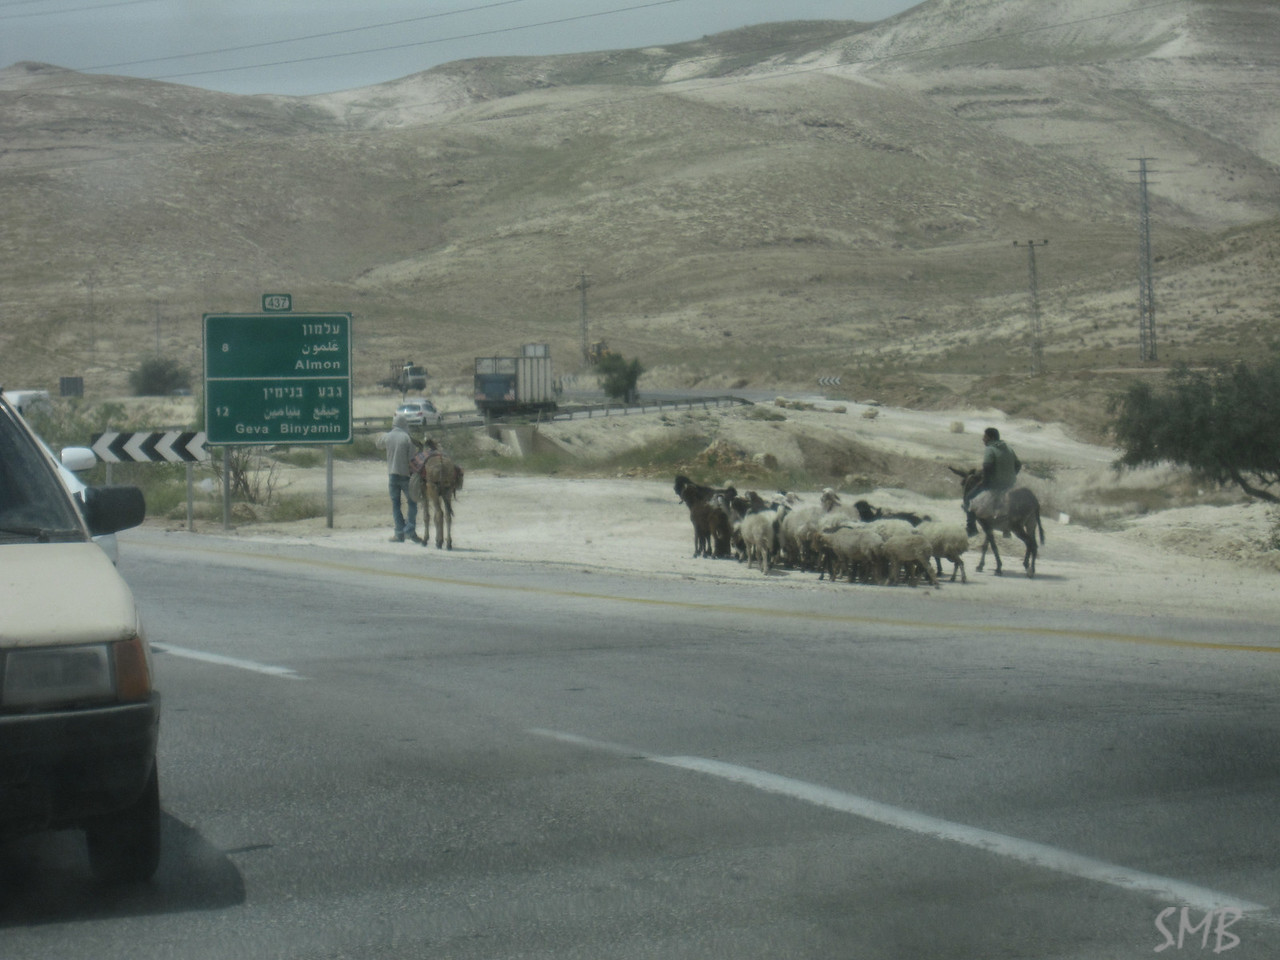 herding on the highway<br /> <br /> Palestine